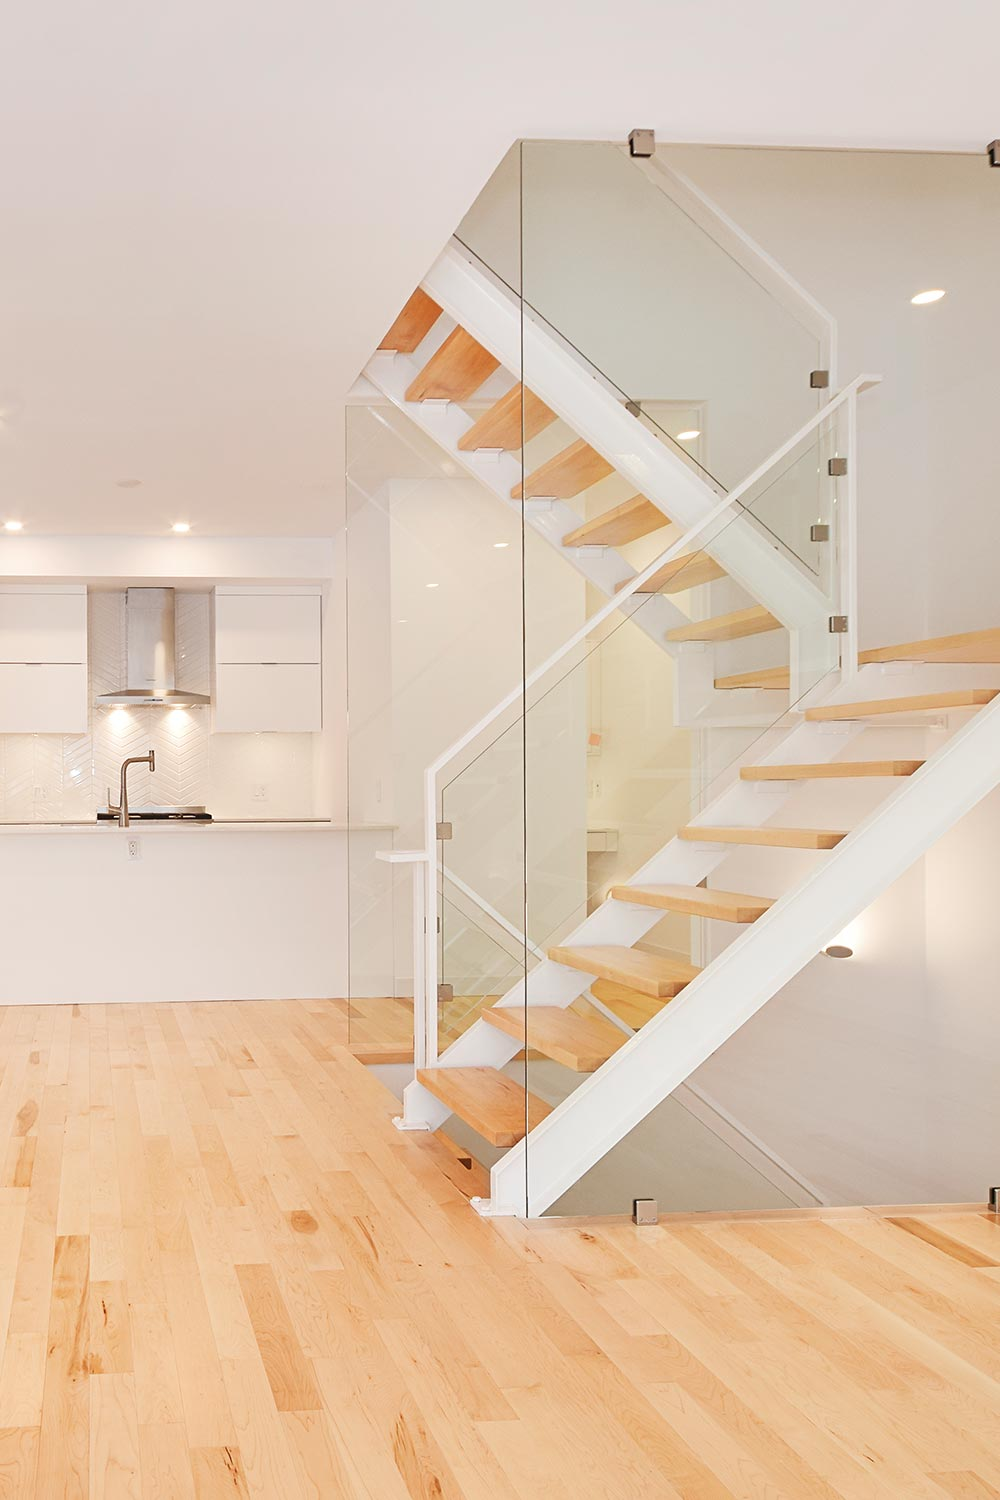 Stunning stairs and railing transforming your vision into reality.  At Branje Metal Works, we've designed and built many styles of staircases for you to choose from. If you can't find it here, we can explore your vision and together, we'll create the perfect staircase for your home.